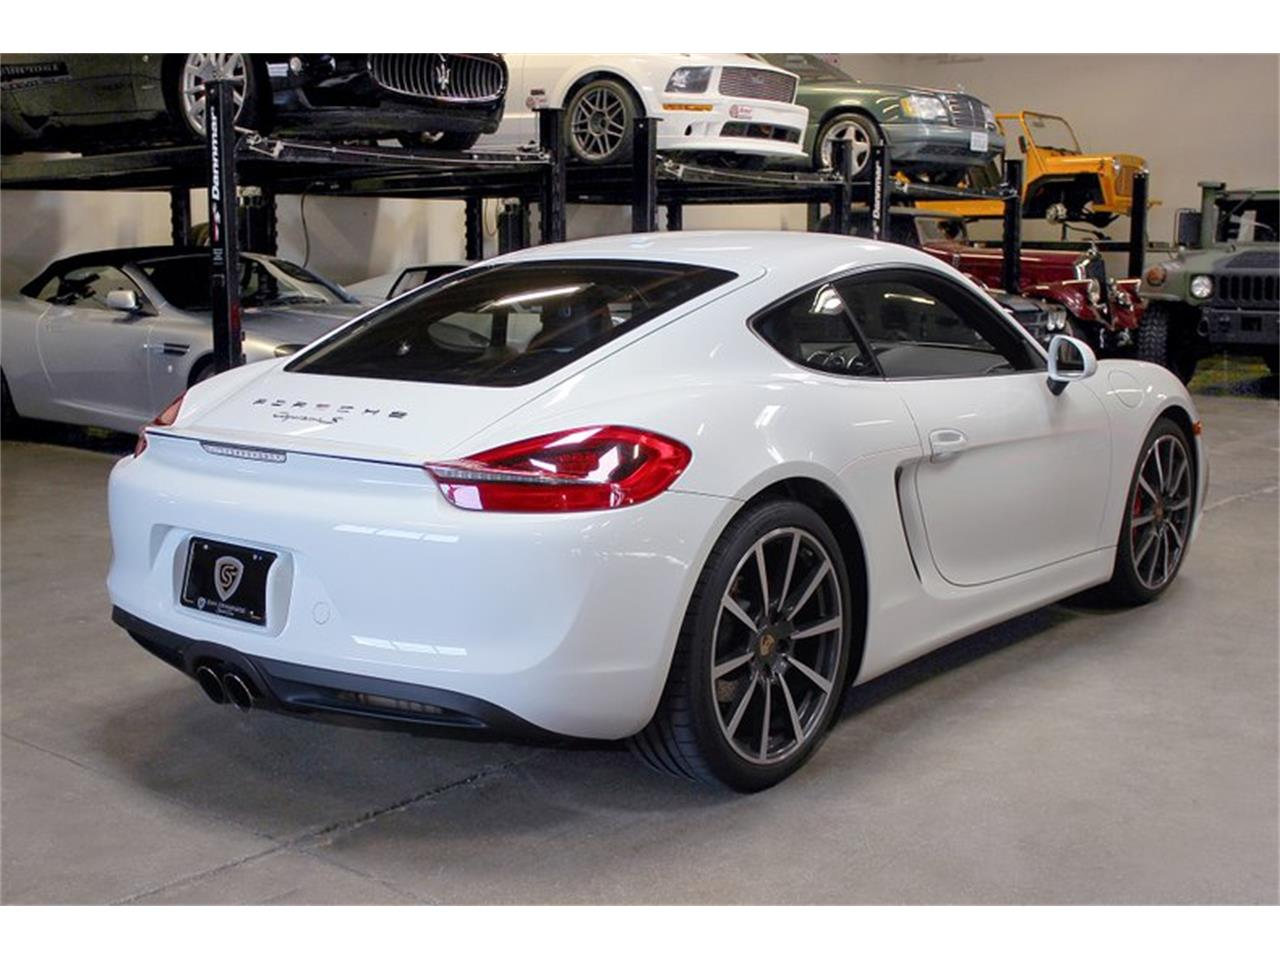 2014 Porsche Cayman (CC-1206393) for sale in San Carlos, California